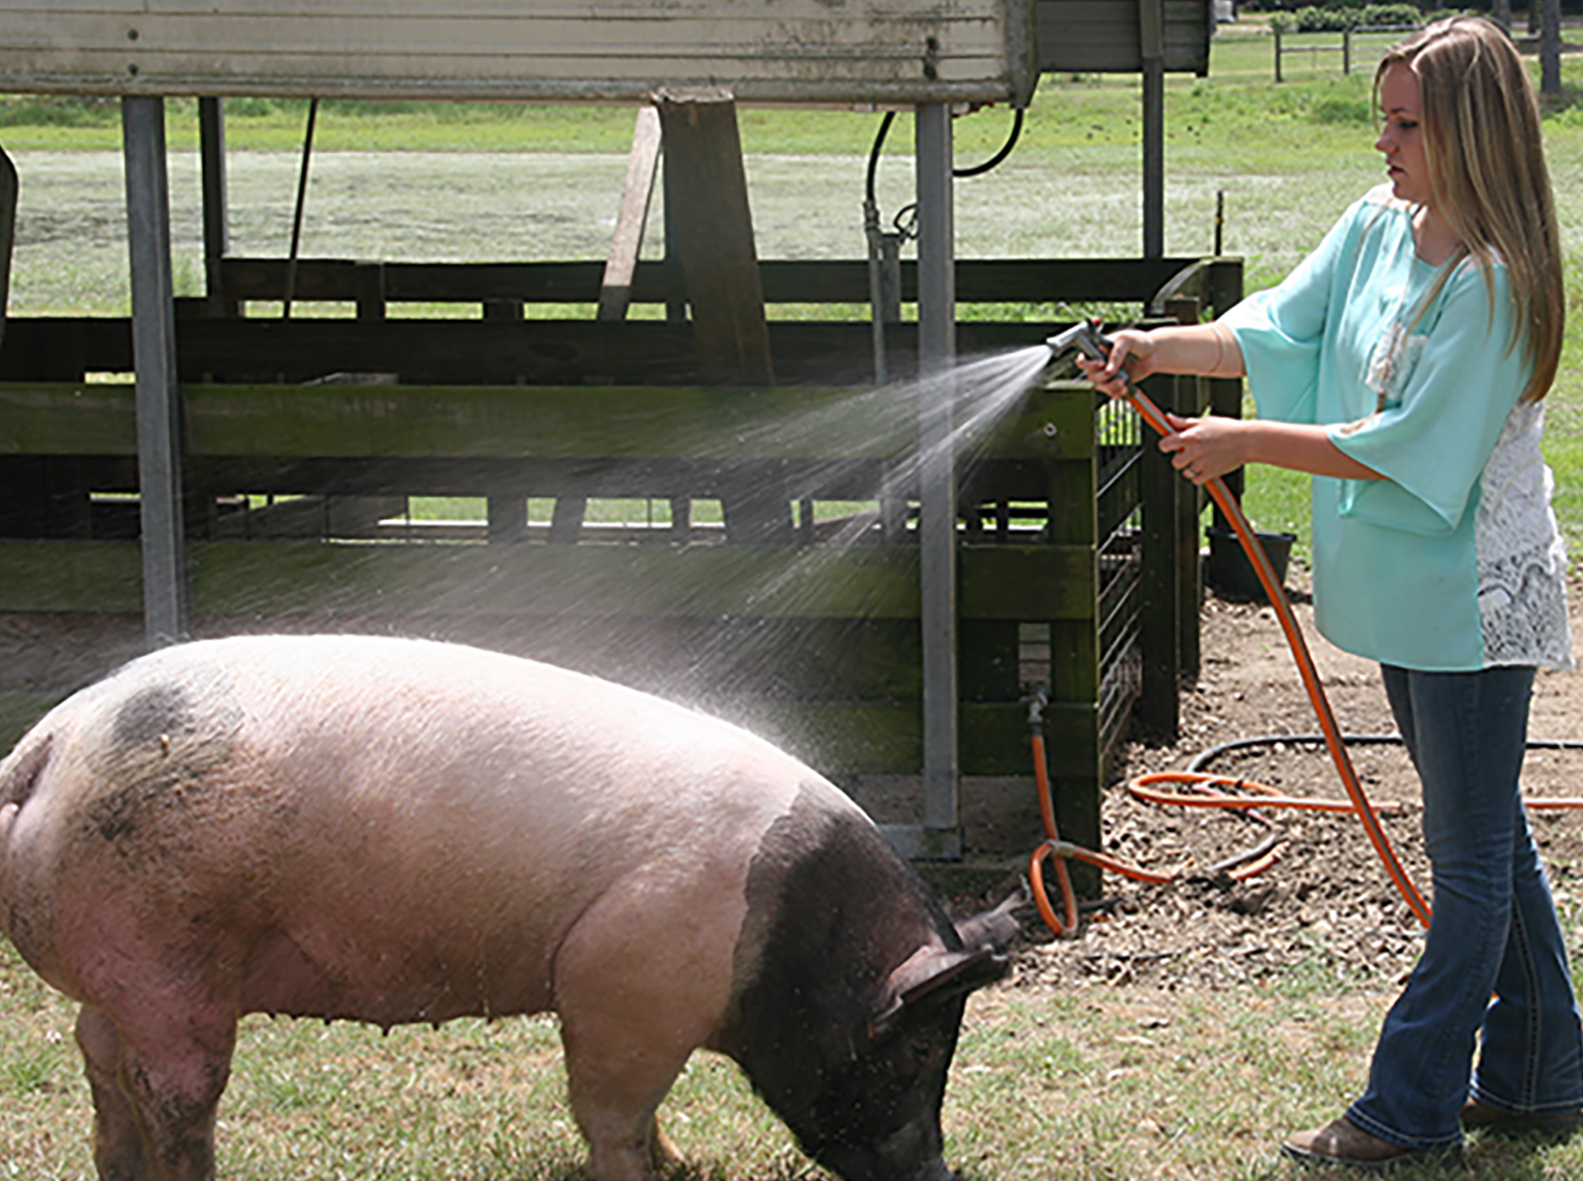 Courtney Conine washes her pig at her home in Camilla, Georgia.